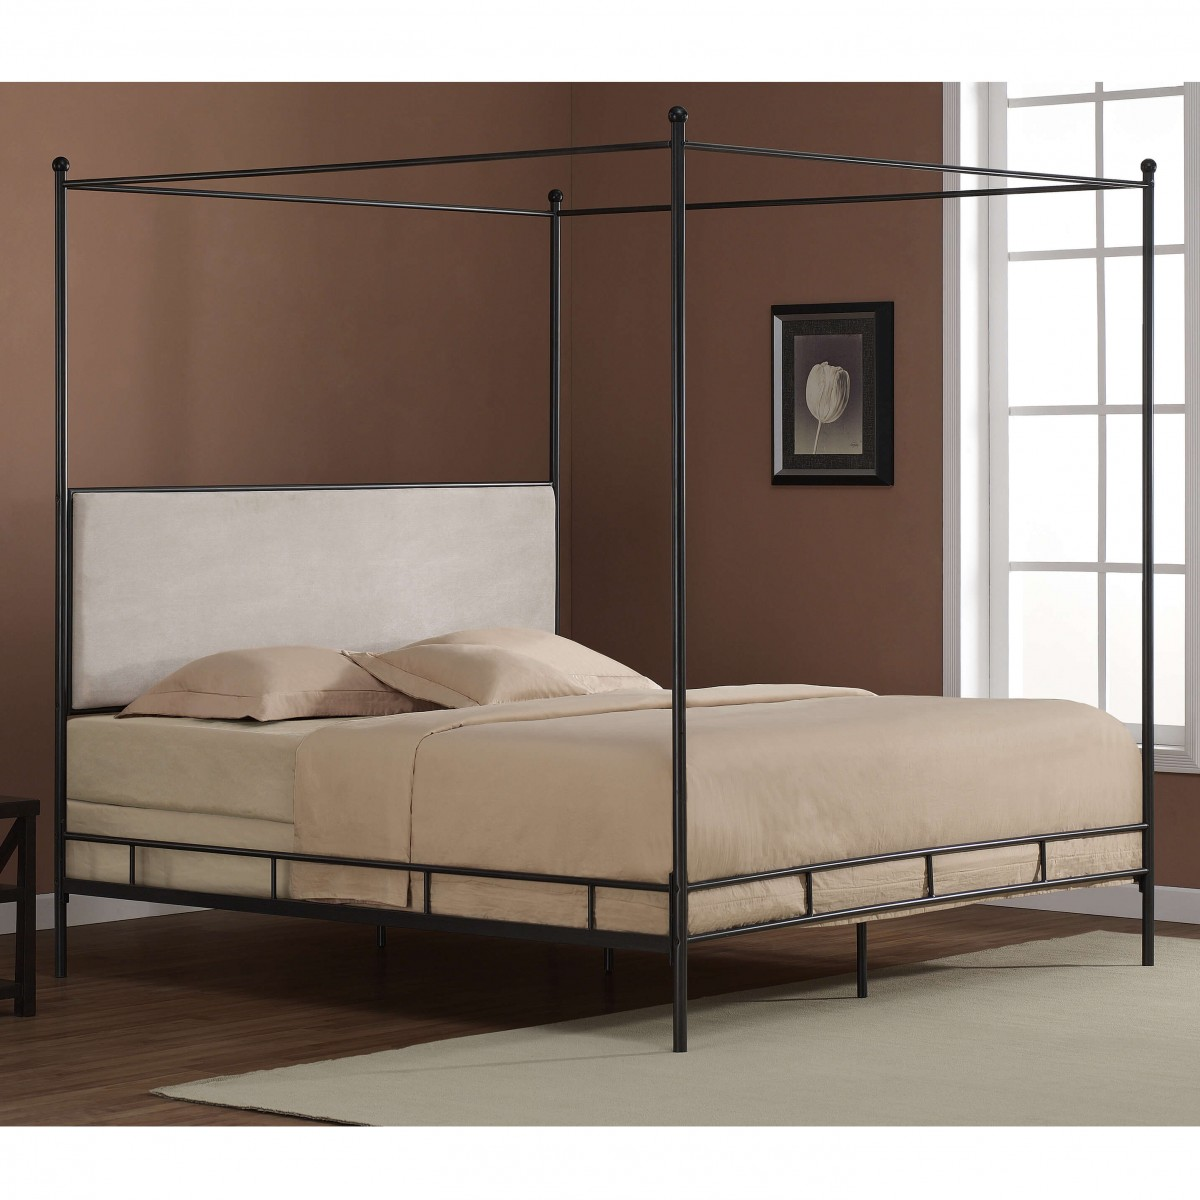 Lion king canopy metal frame bed & king canopy metal frame bed